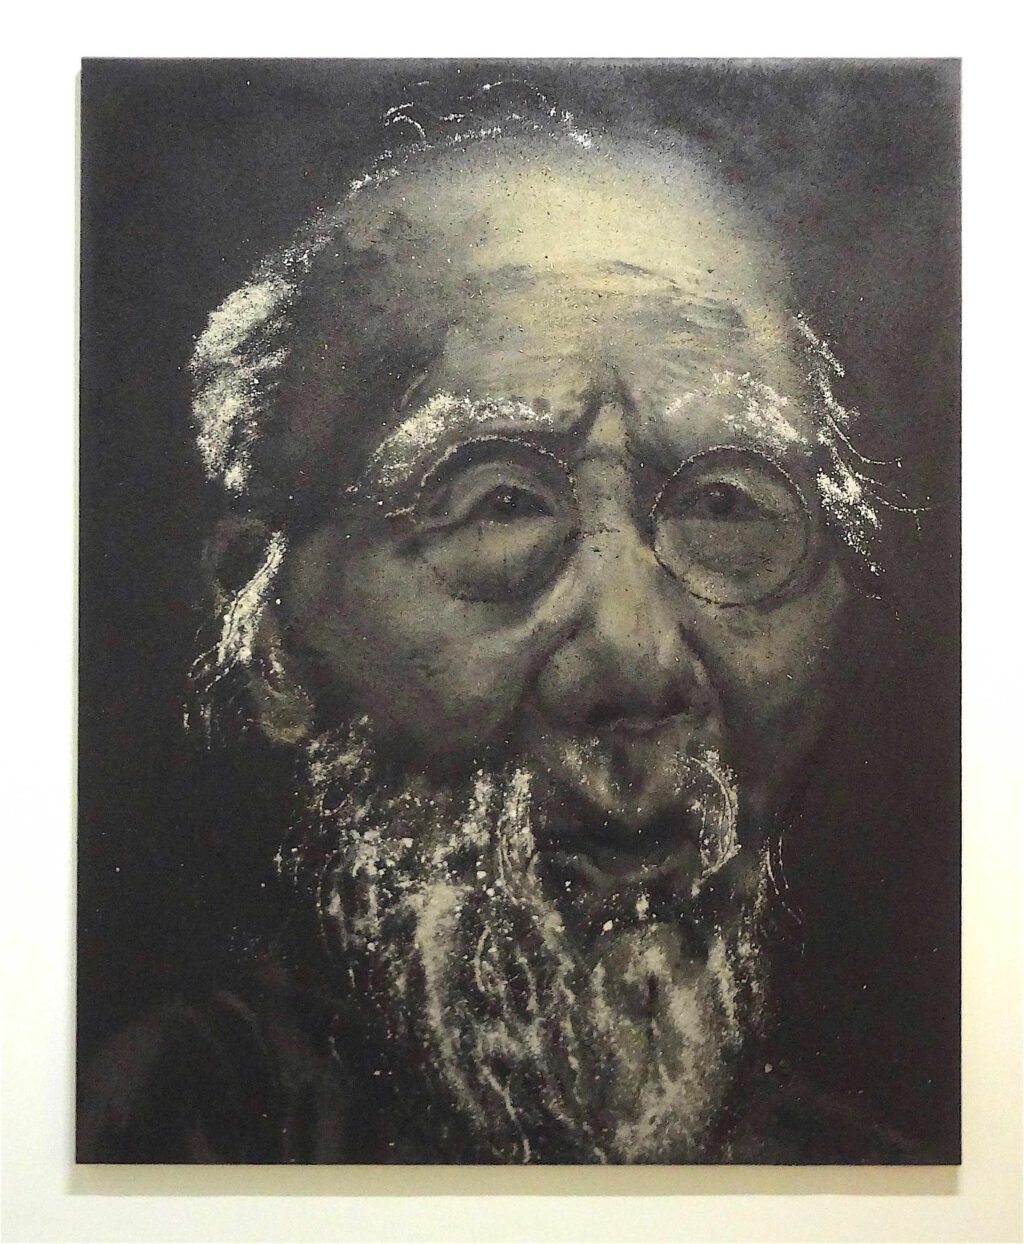 """Zhang Huan """"Old Baishi in 99 Years Old"""" 2007, Ash on linen"""